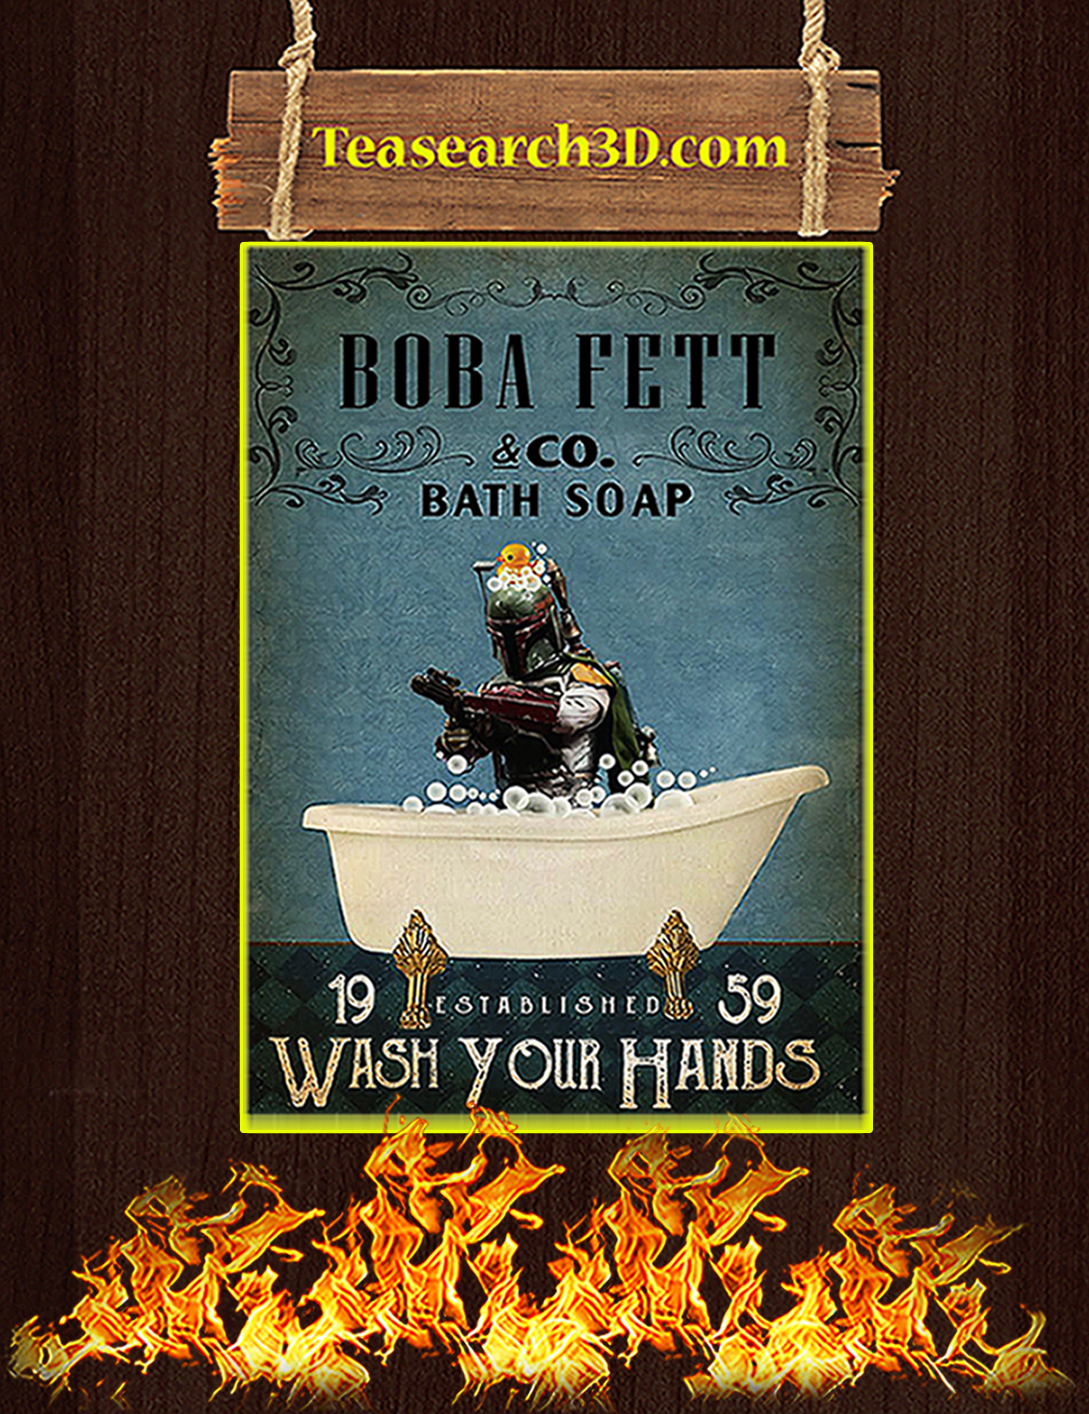 Boba bett co bath soap wash your hands poster A2